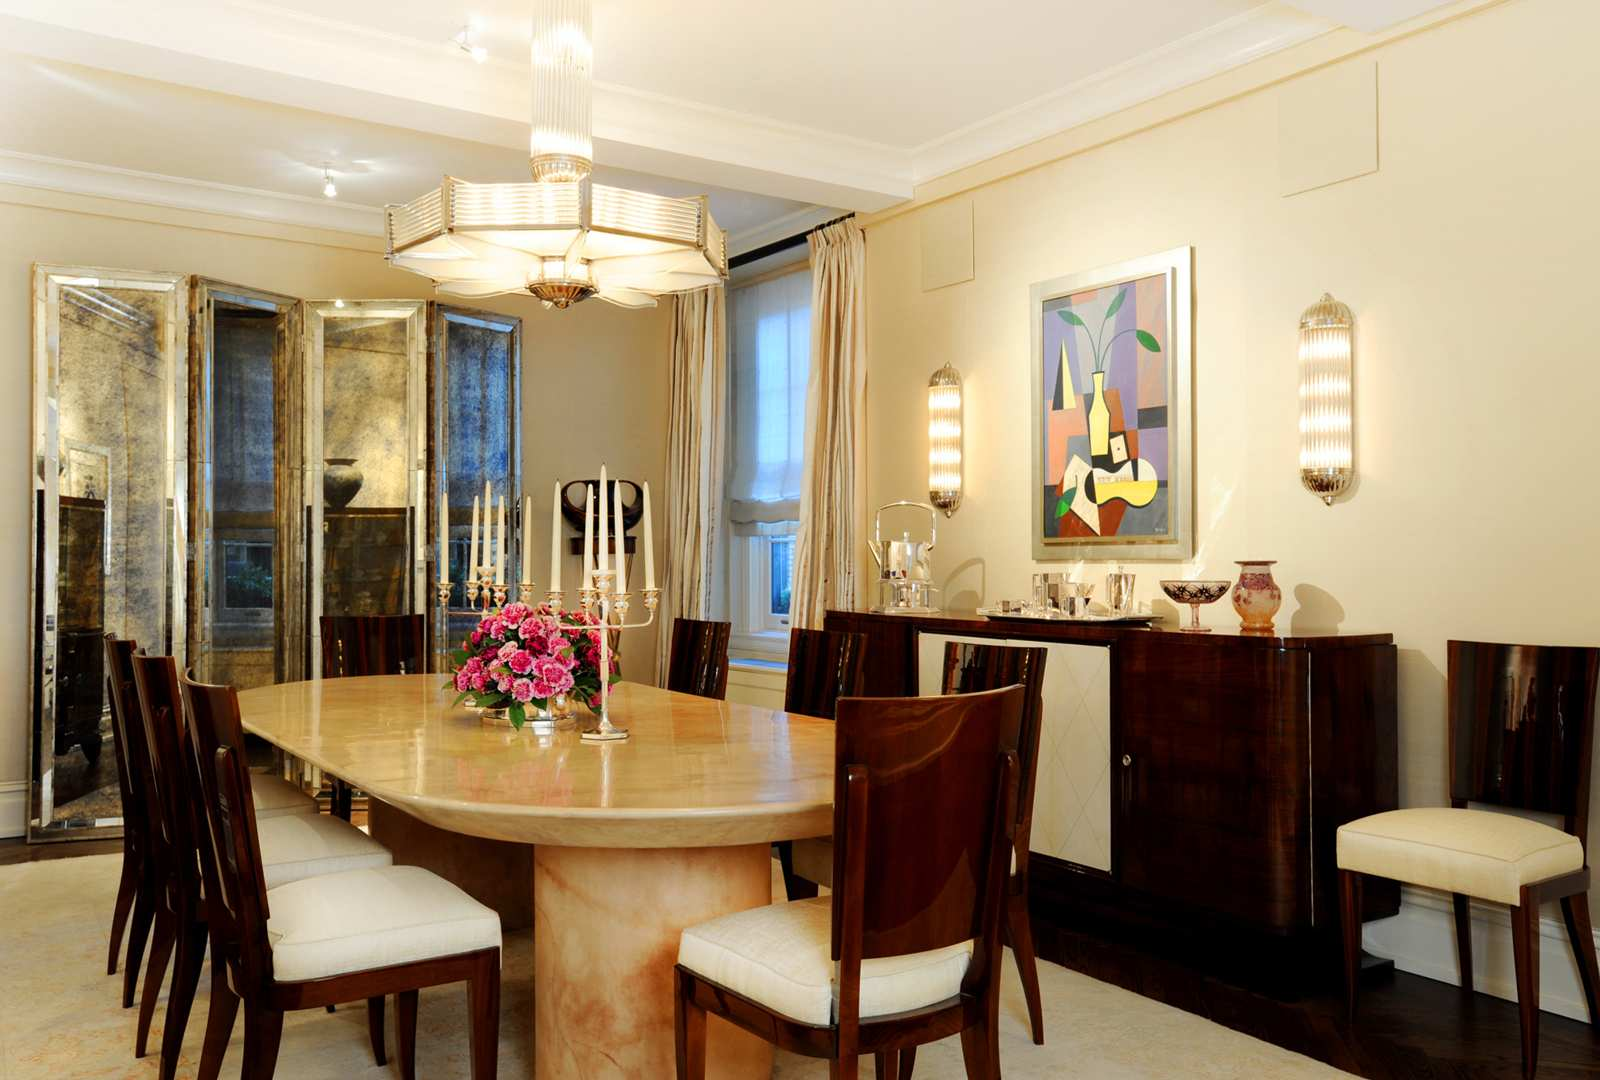 NYC Apartments - Upper East Side